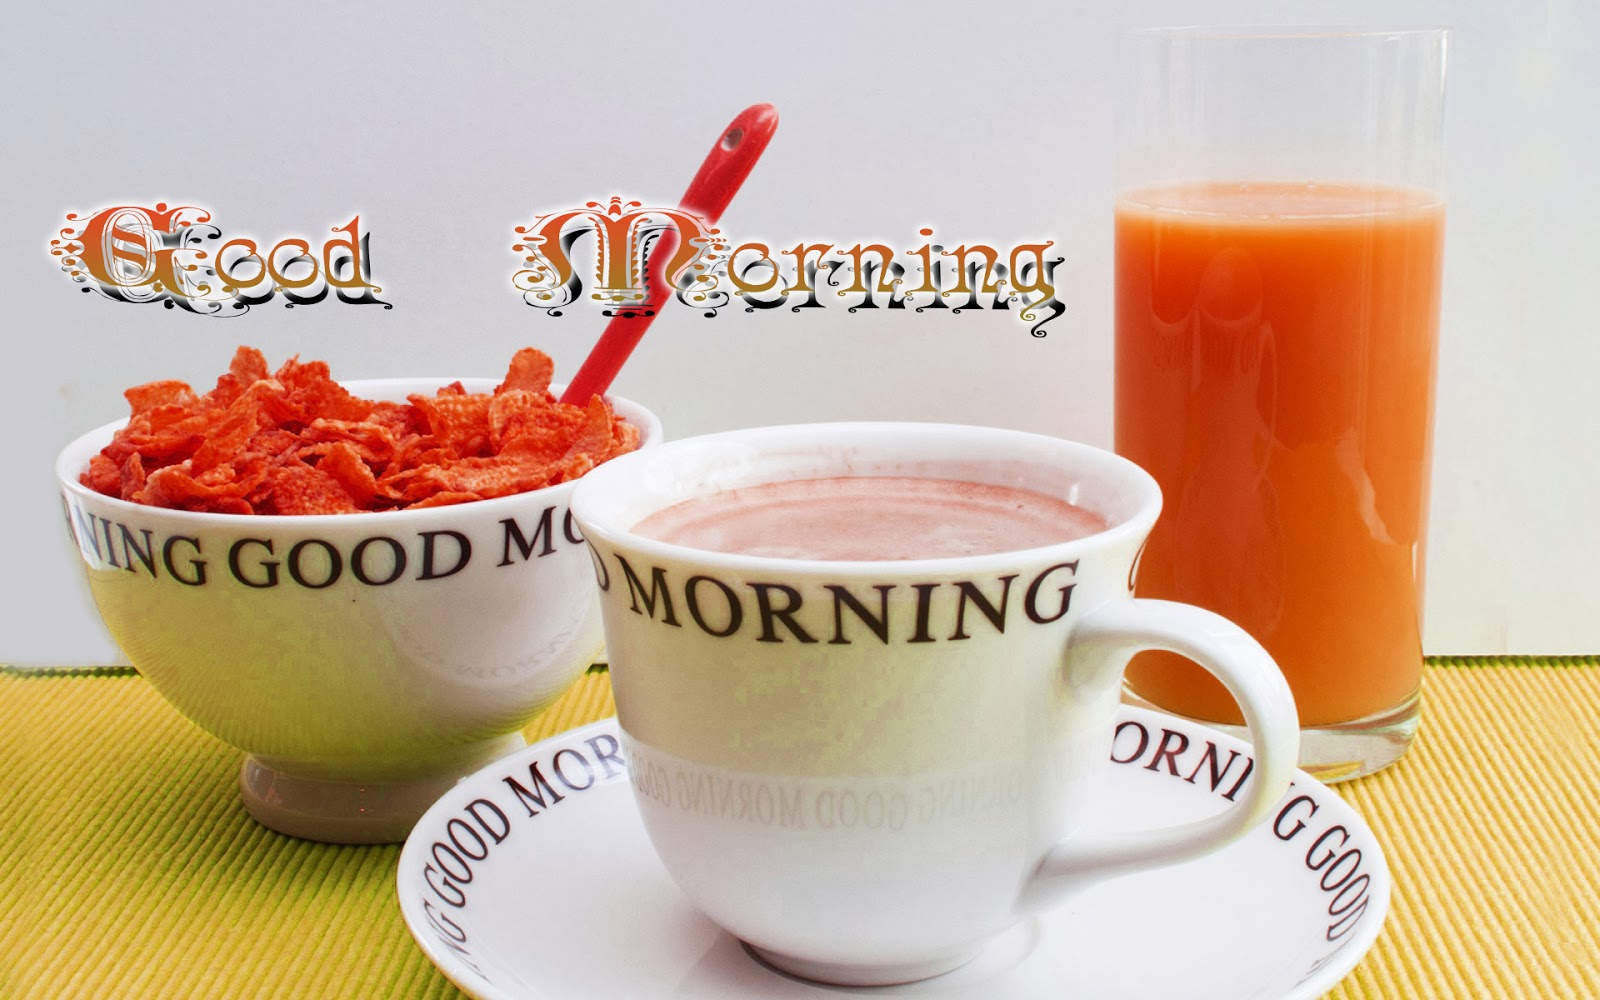 Good-Morning-Wallpaper-With-Glass-Of-Juice-And-Snaks-Image-HD-Wide